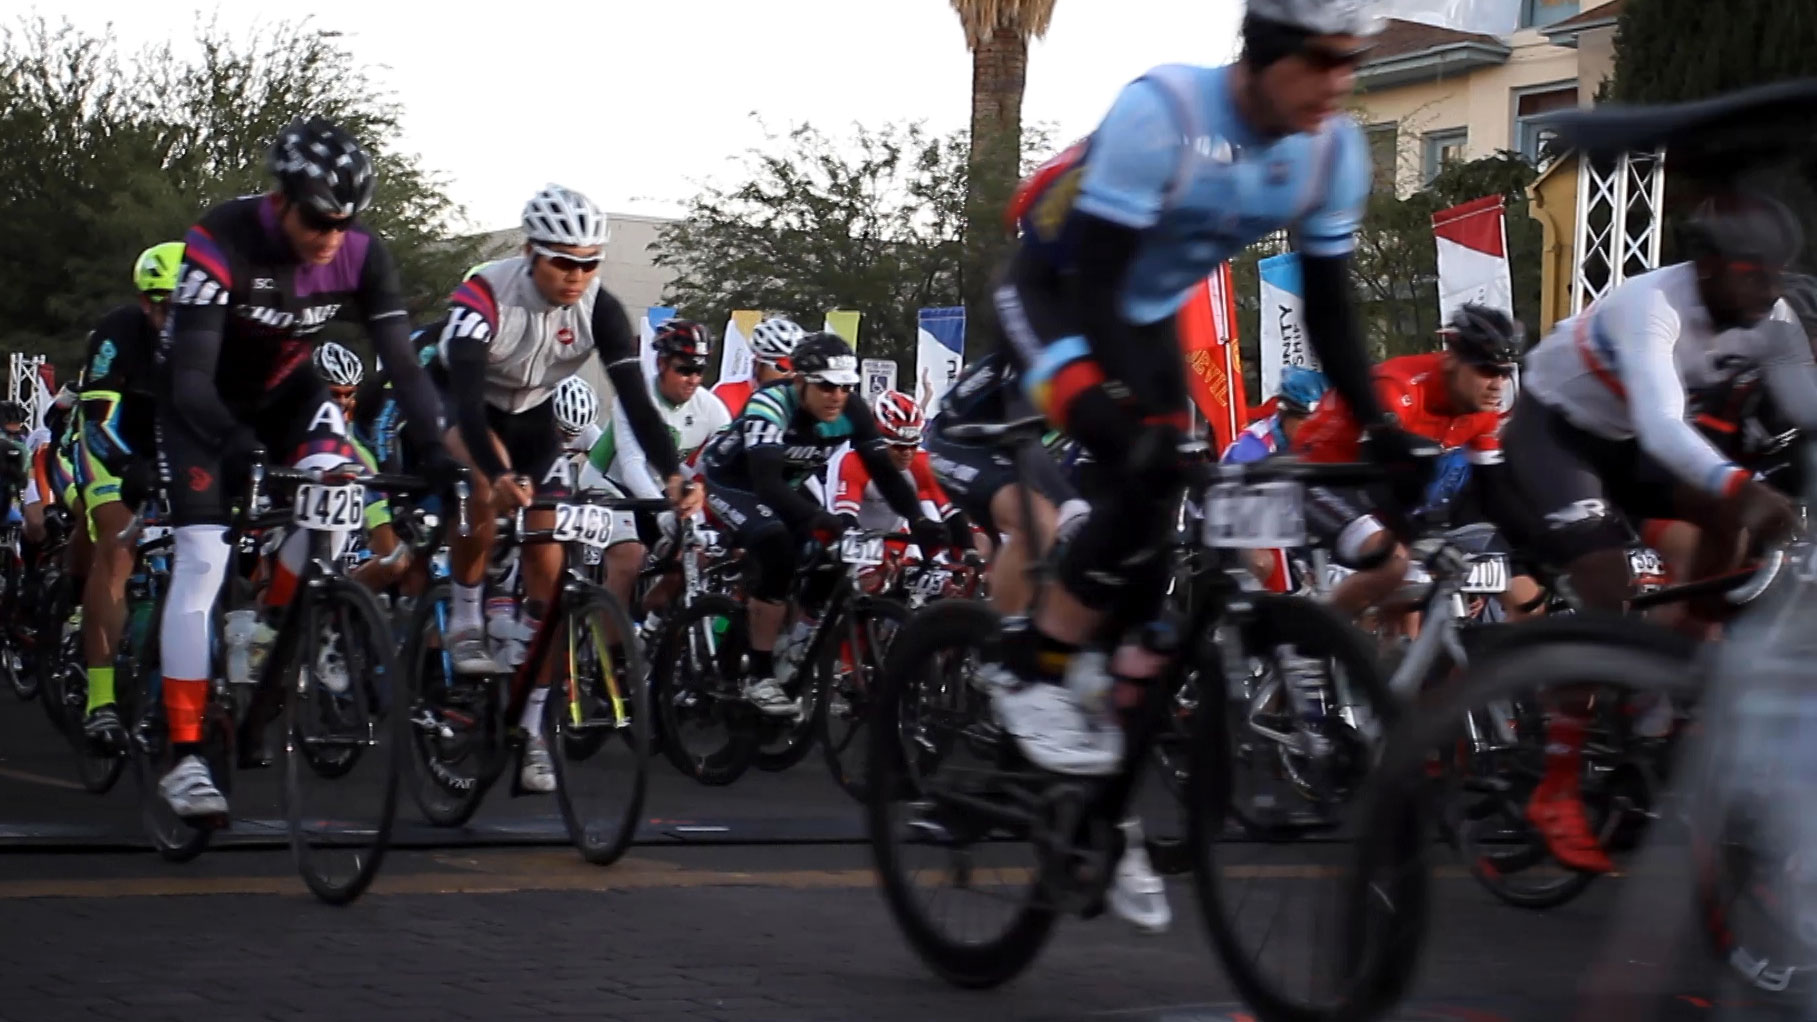 Cyclists depart from the starting line at the 2014 El Tour de Tucson.